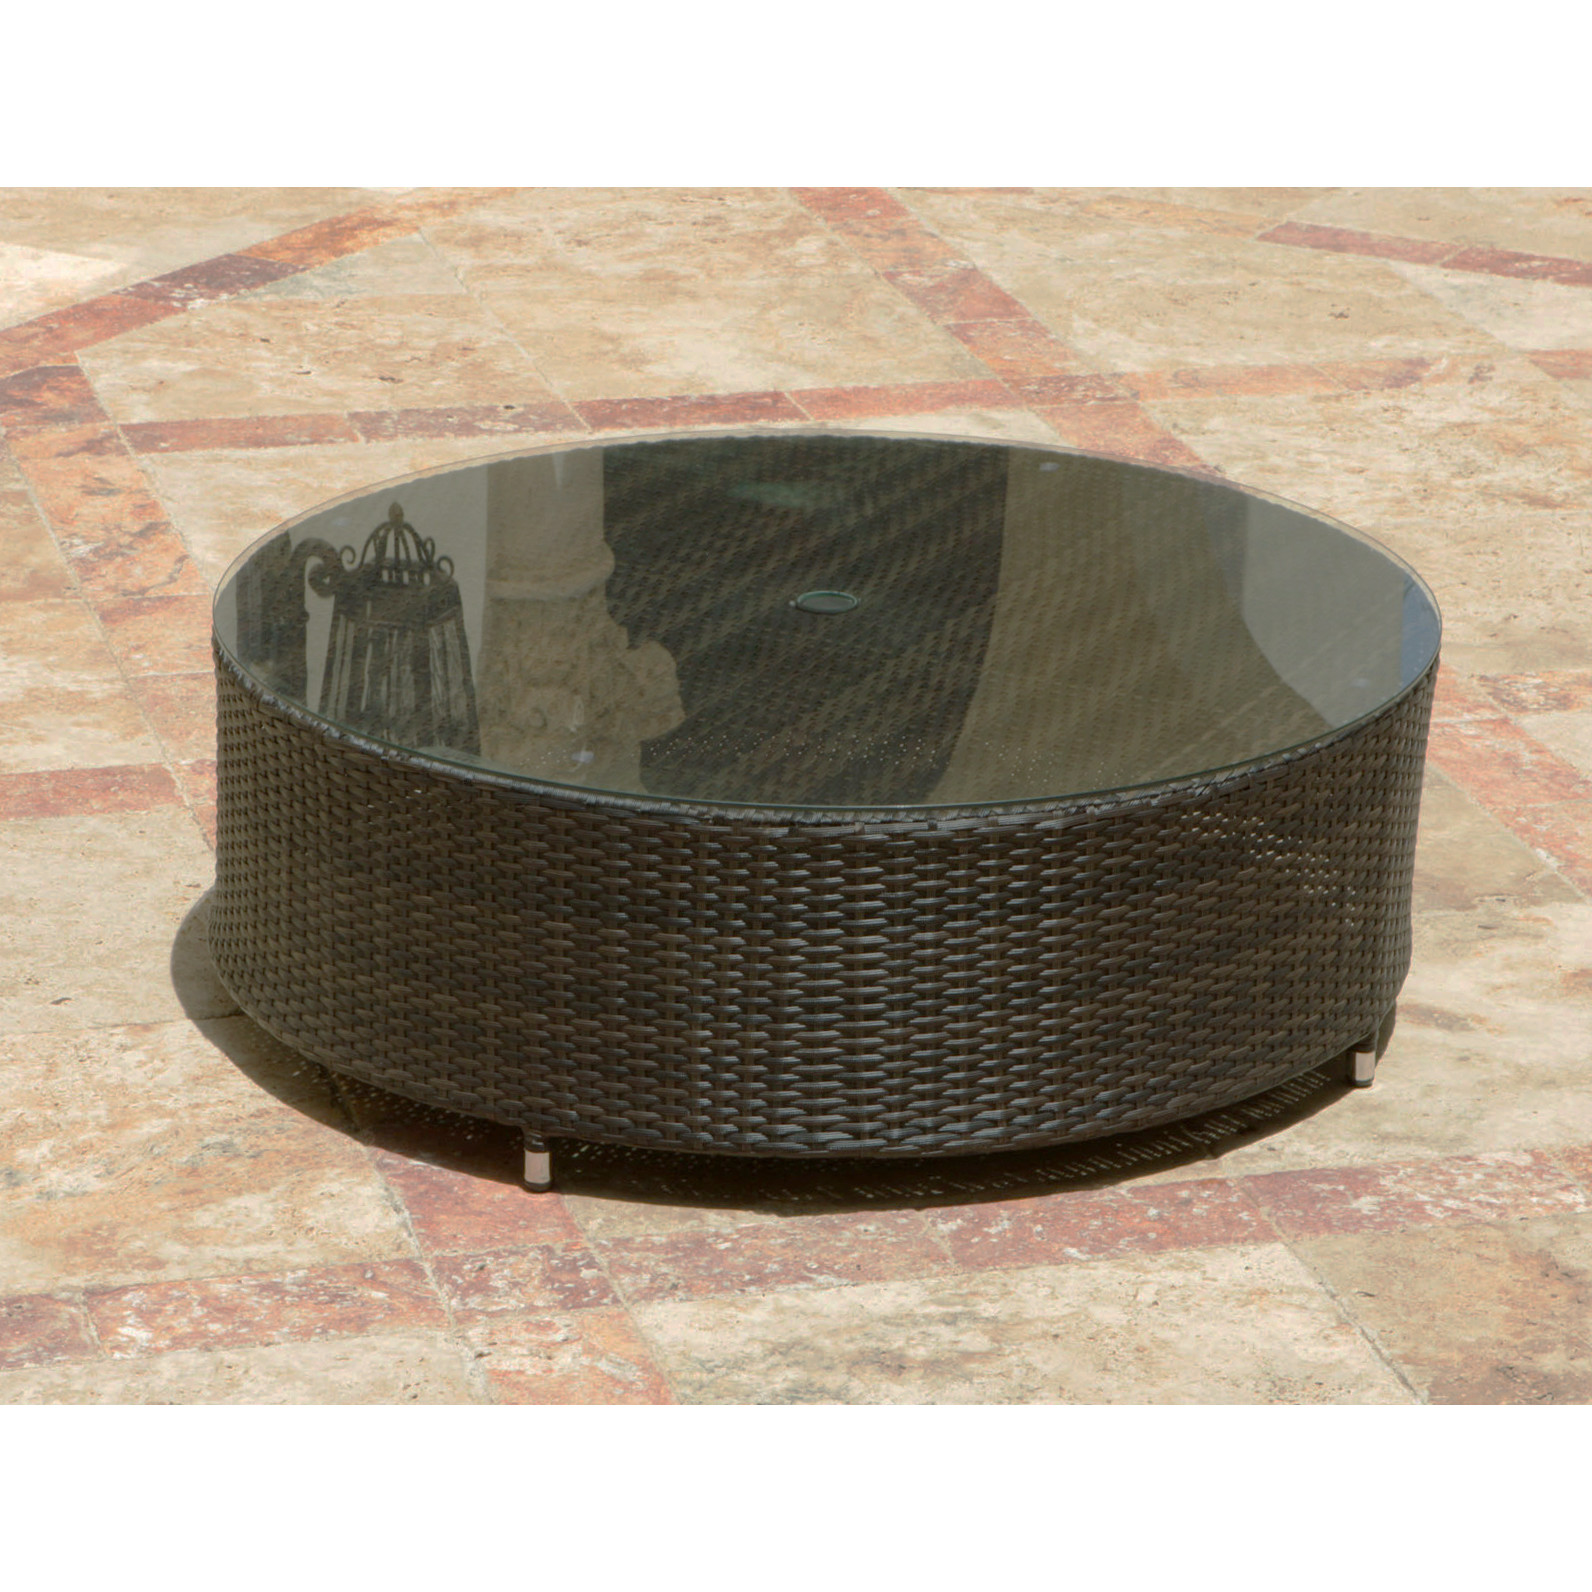 coffee table outdoor patio the garden terrace circa round with umbrella hole plans side storage ideas inch end square pottery barn furnishings wedding linens whole nate berkus